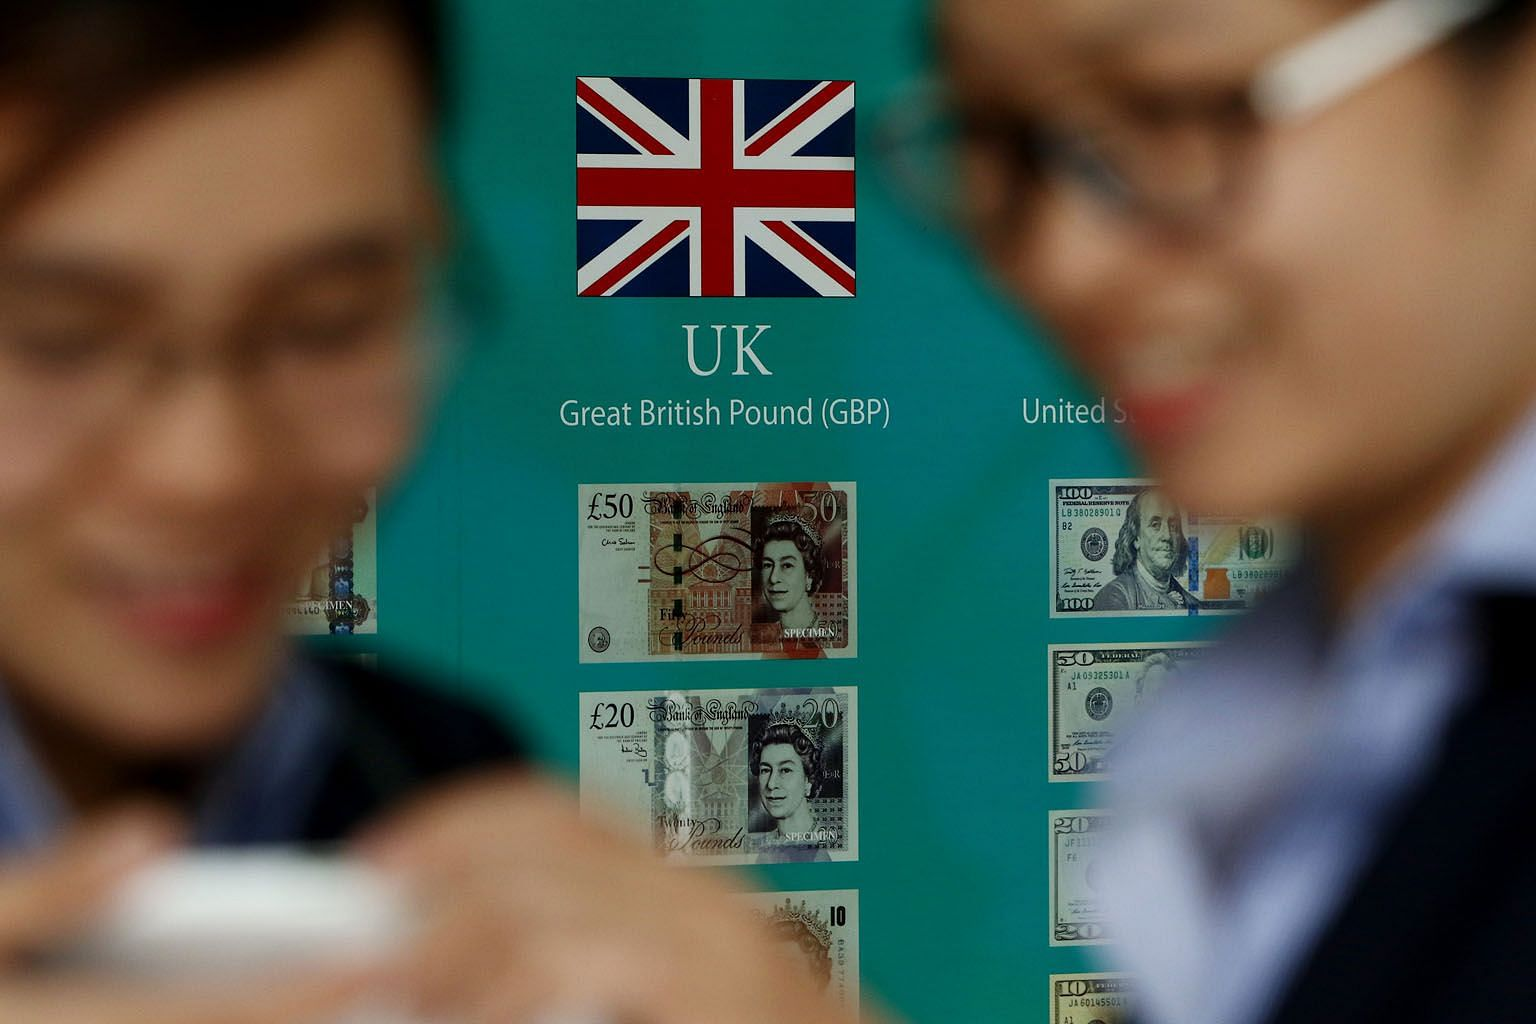 The Union Jack and British pound banknotes on display outside a bank in the South Korean capital Seoul. South Korea last week unveiled an US$8.5 billion (S$11.4 billion) economic support package to weather the Brexit shock, giving the central bank room to